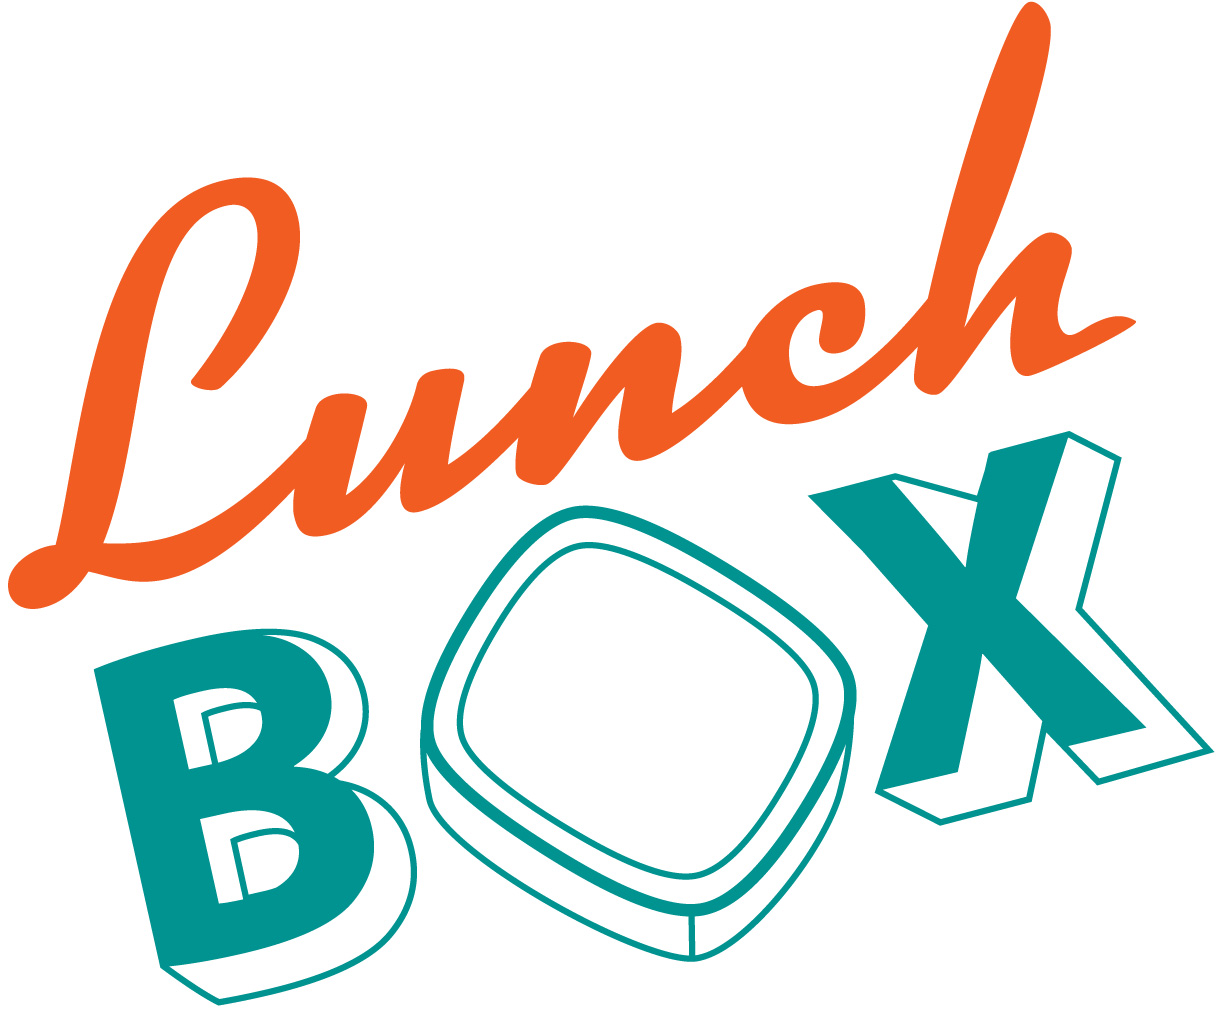 The Lunch Box Project